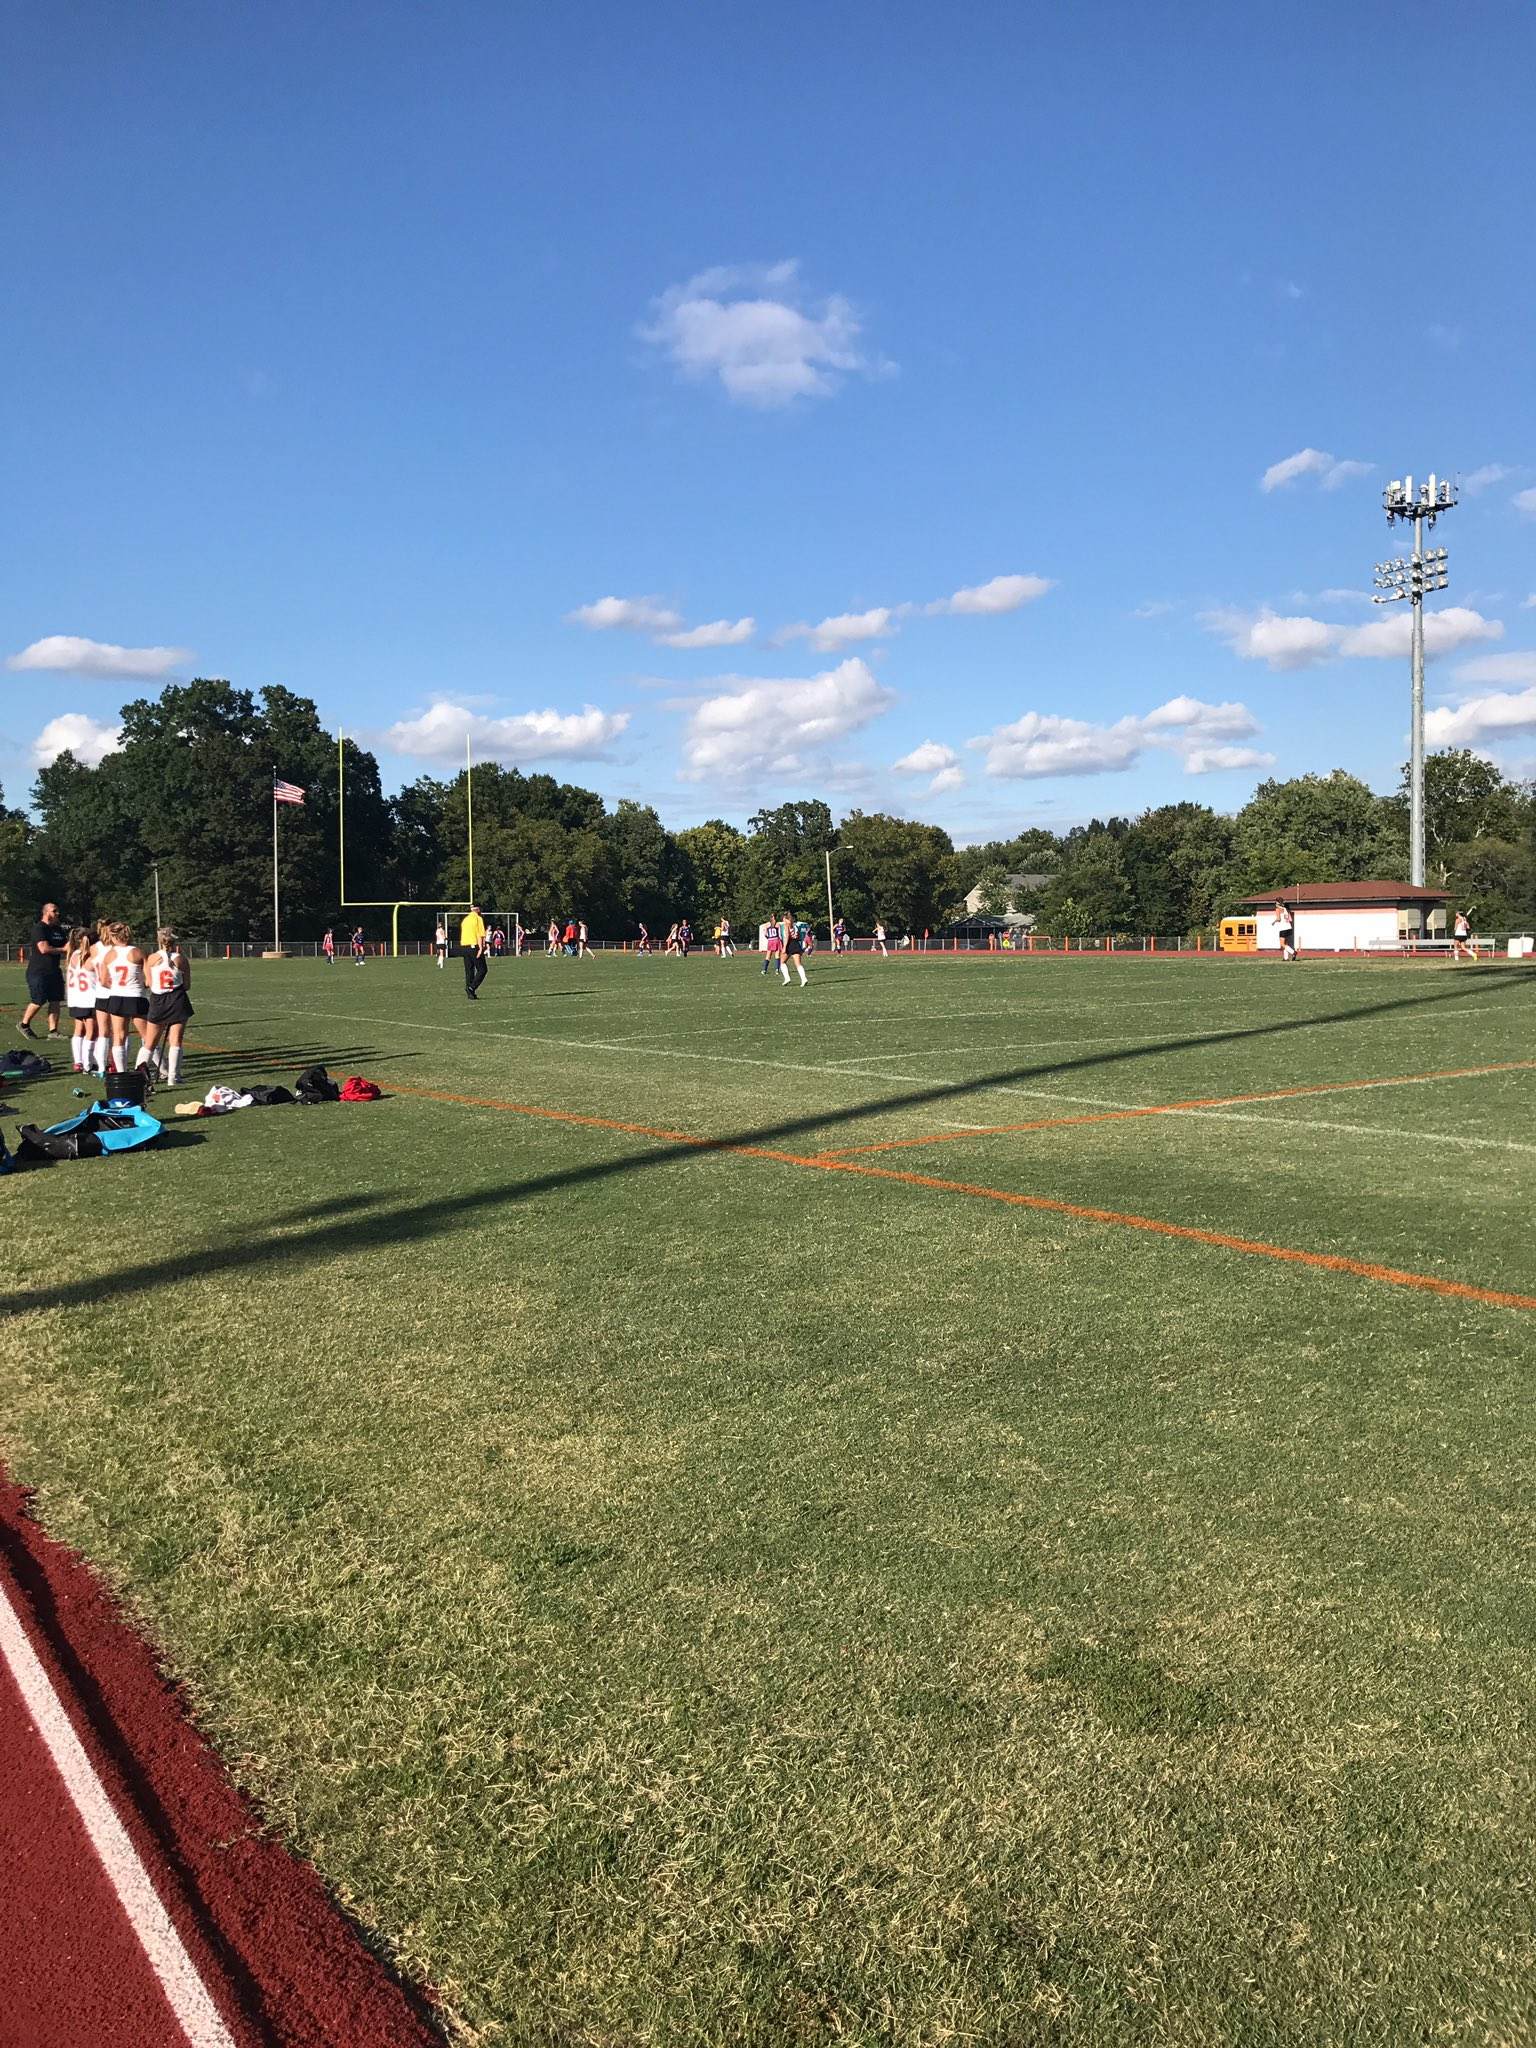 Gorgeous day for field hockey vs Clayton, and WG just scored to go up 1-0! #wgbuzz https://t.co/JSuL64Wex9